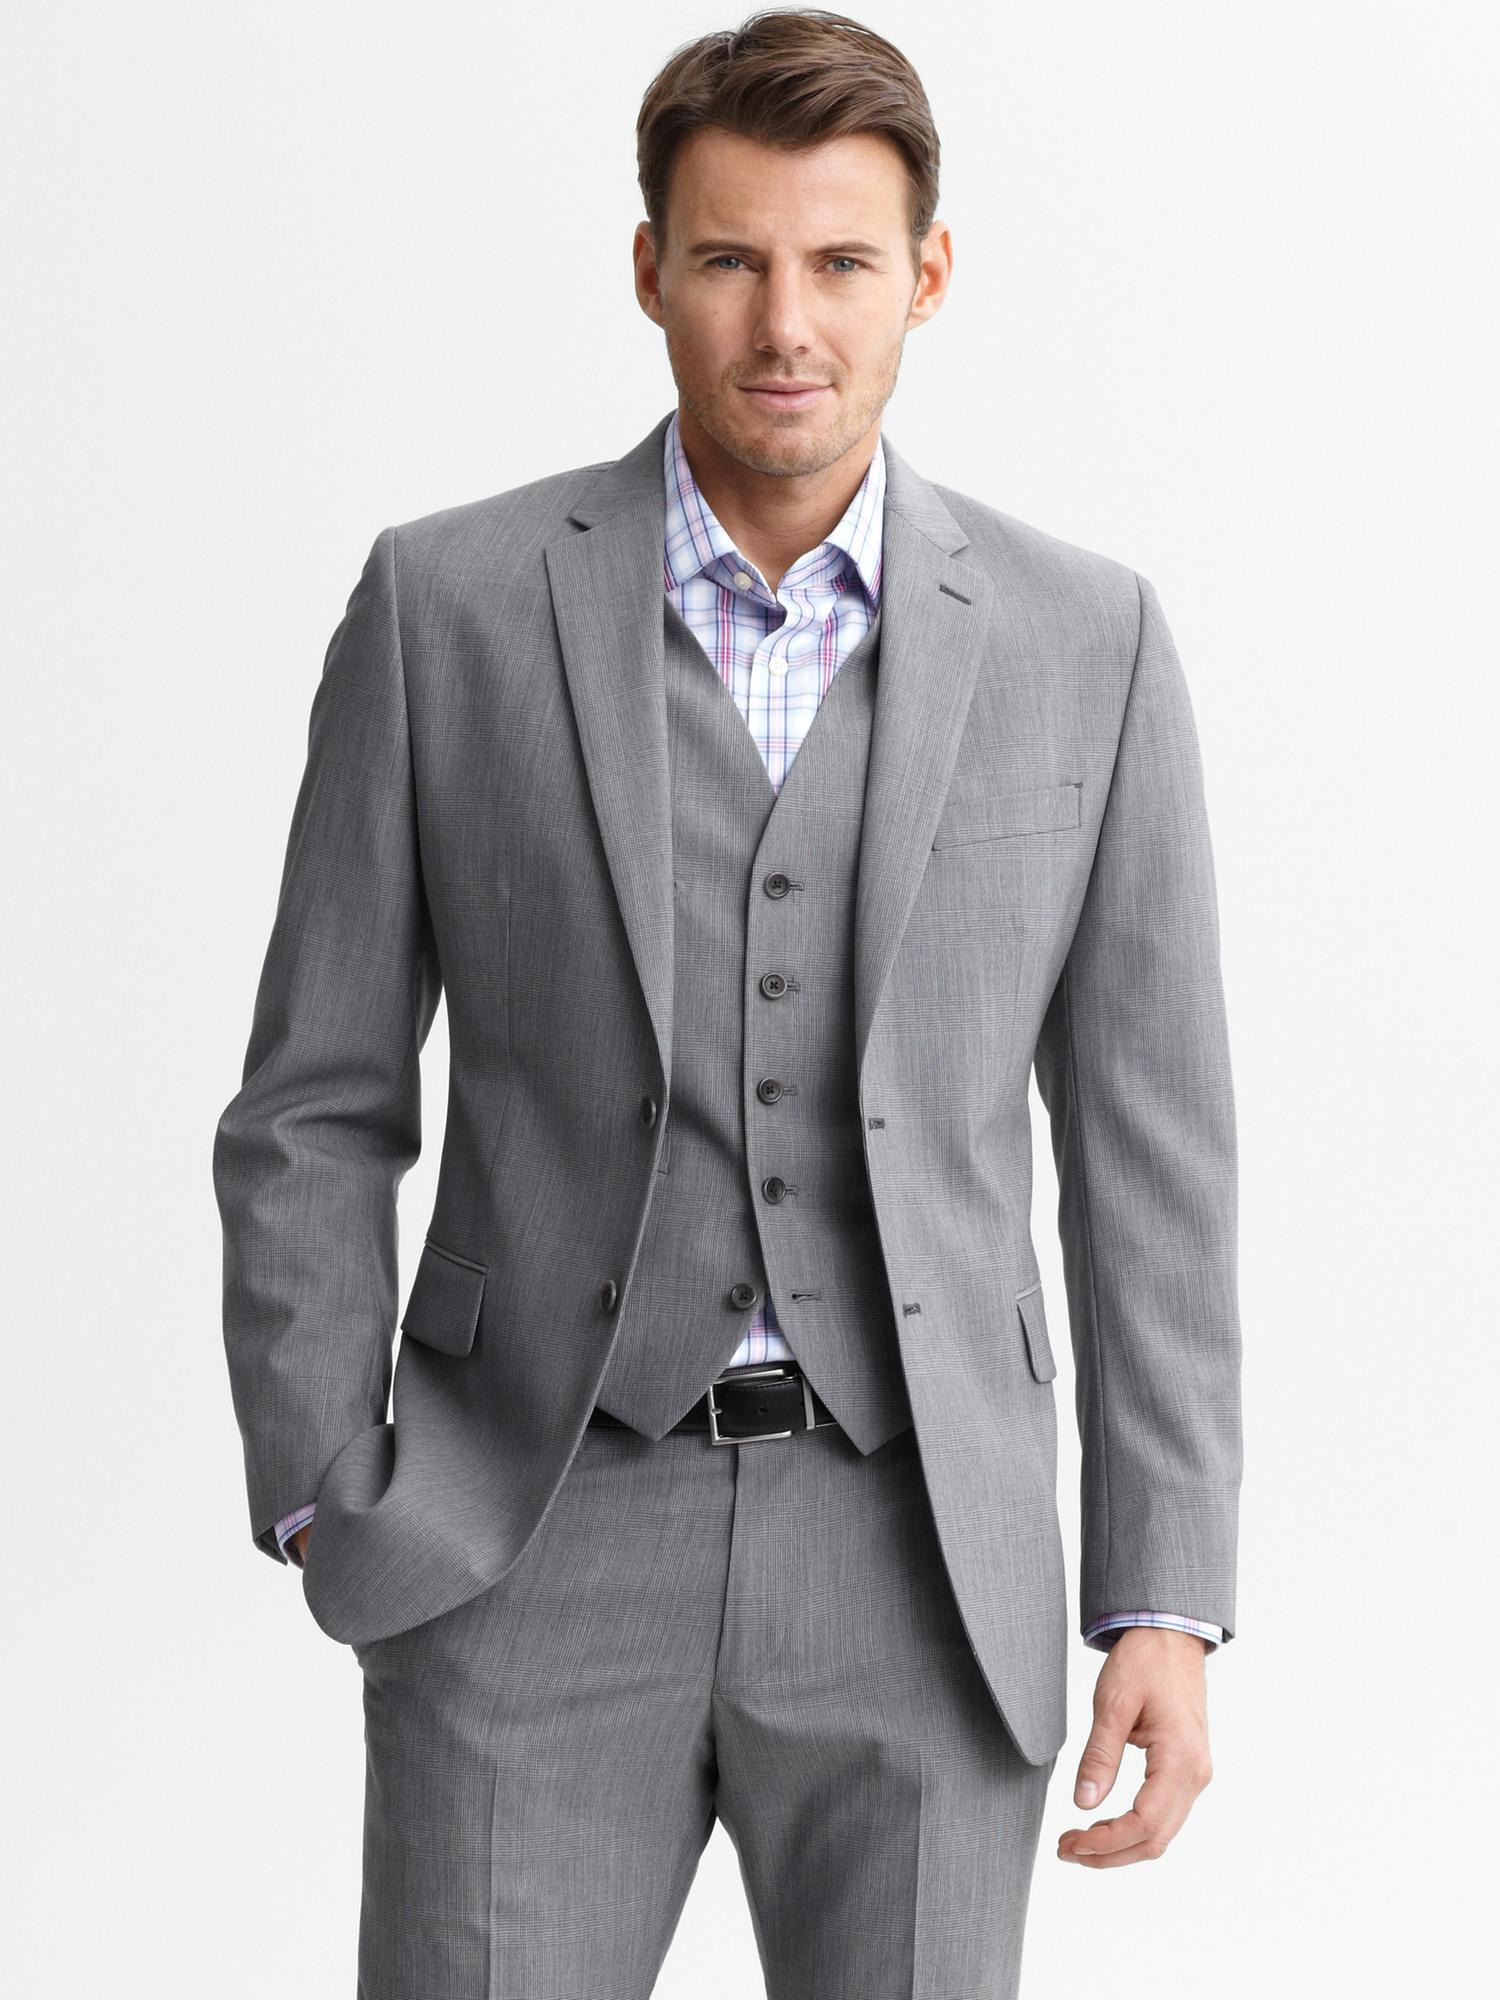 Heather Grey Suit Dress Yy